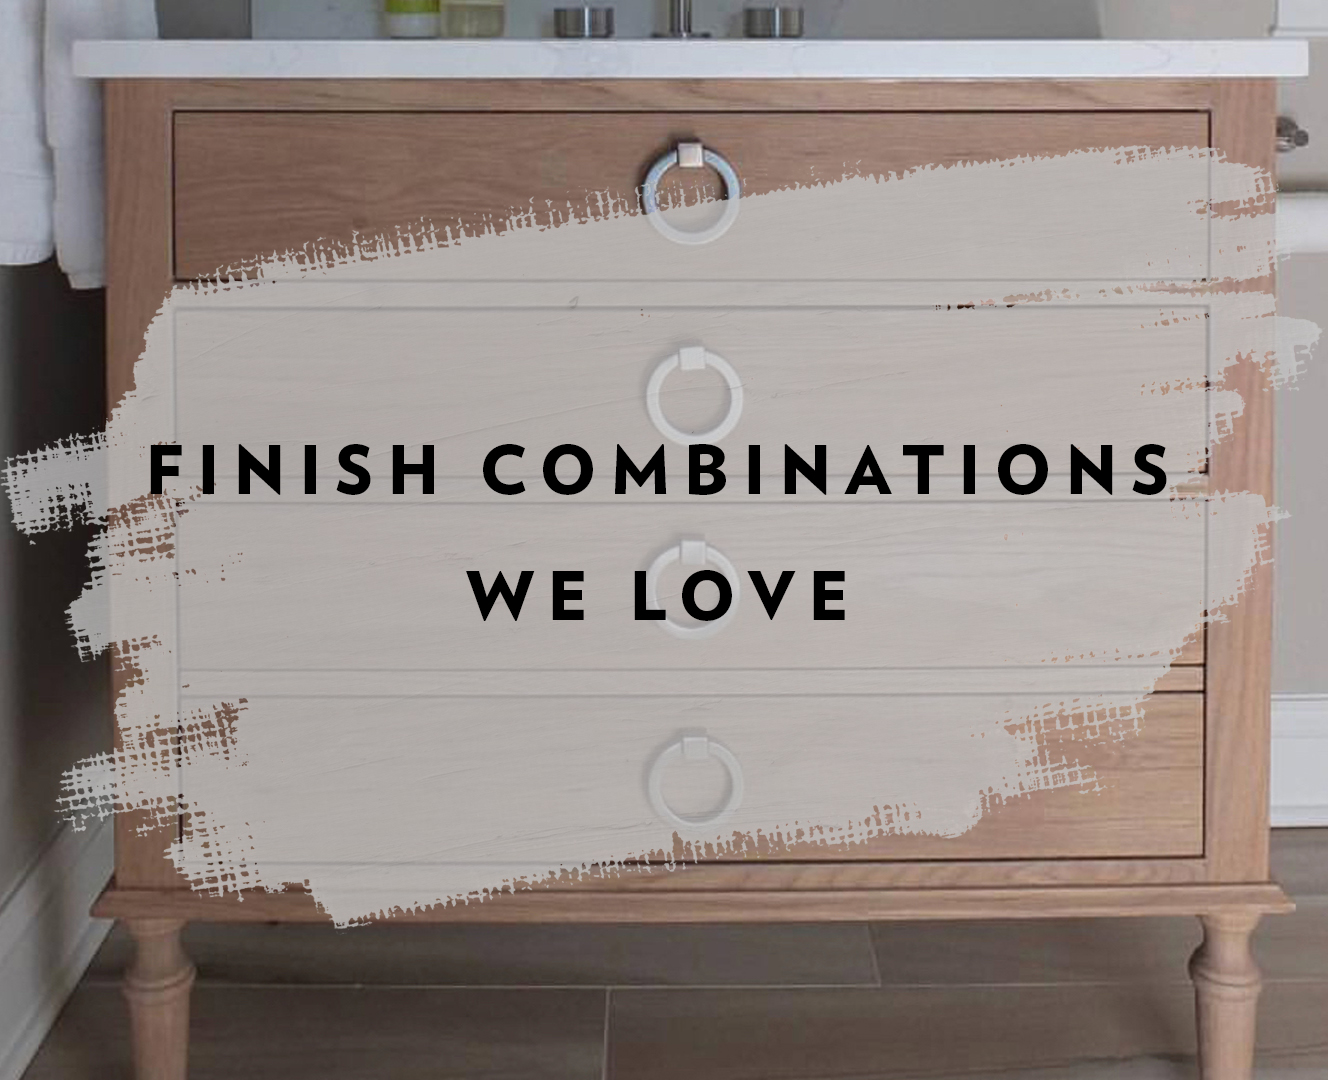 8 Finish Combinations that We Love